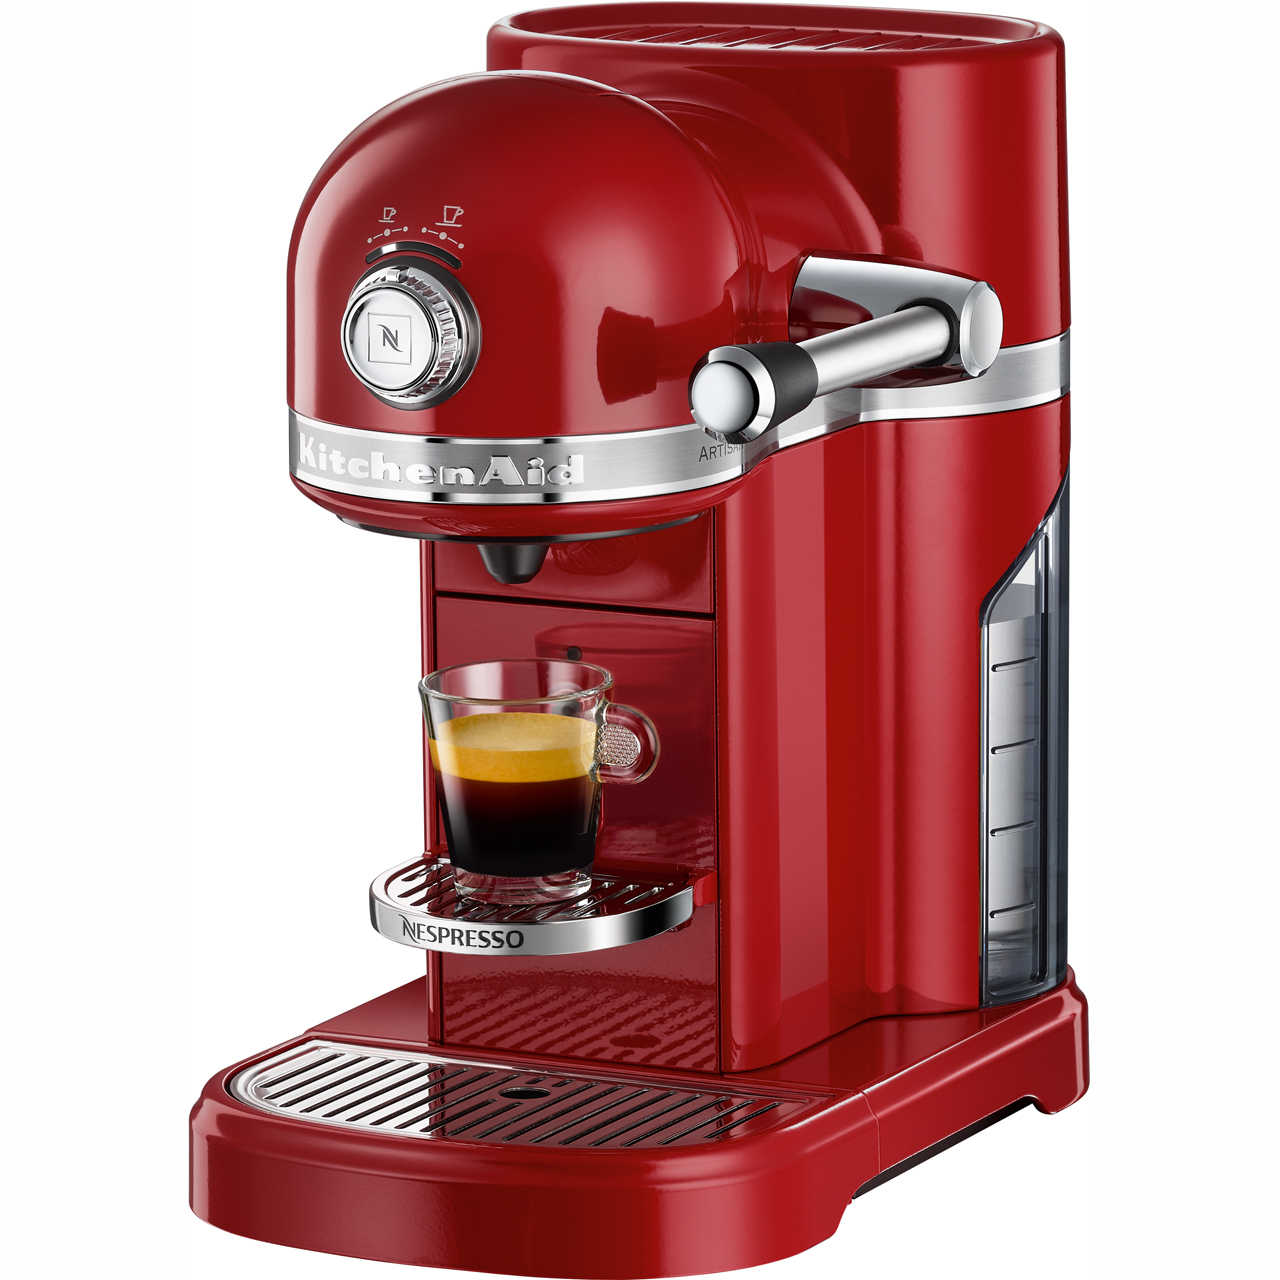 Details About Nespresso By Kitchenaid 5kes0503ber Artisan Pod Coffee Machine 1160 Watt Red